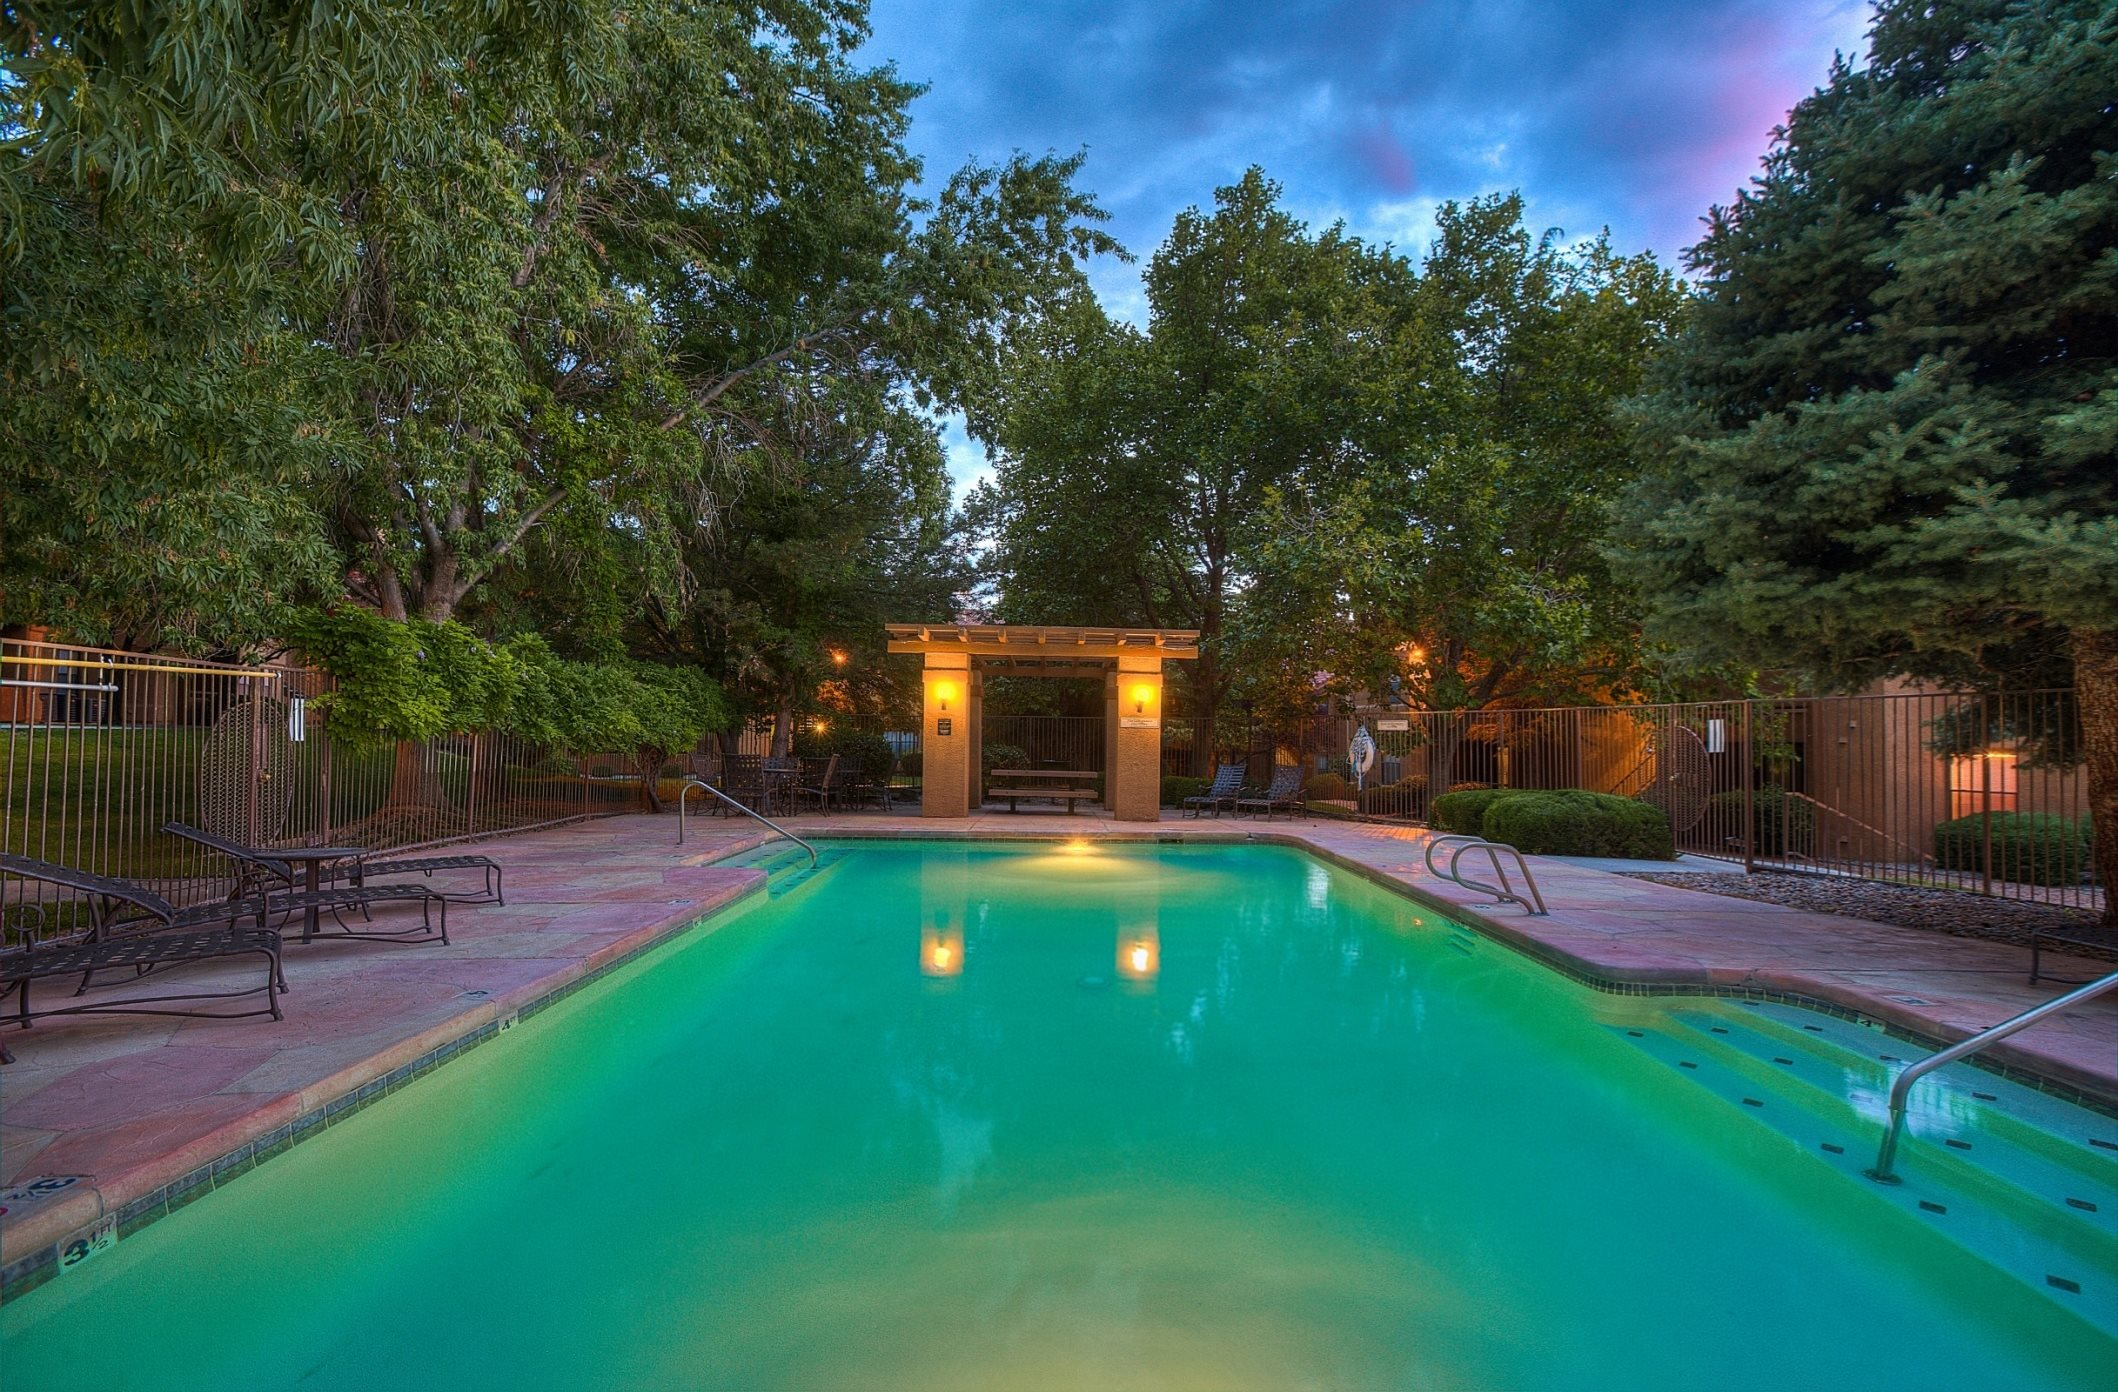 Resort-Style Pool at The Overlook Apartments, Albuquerque, NM